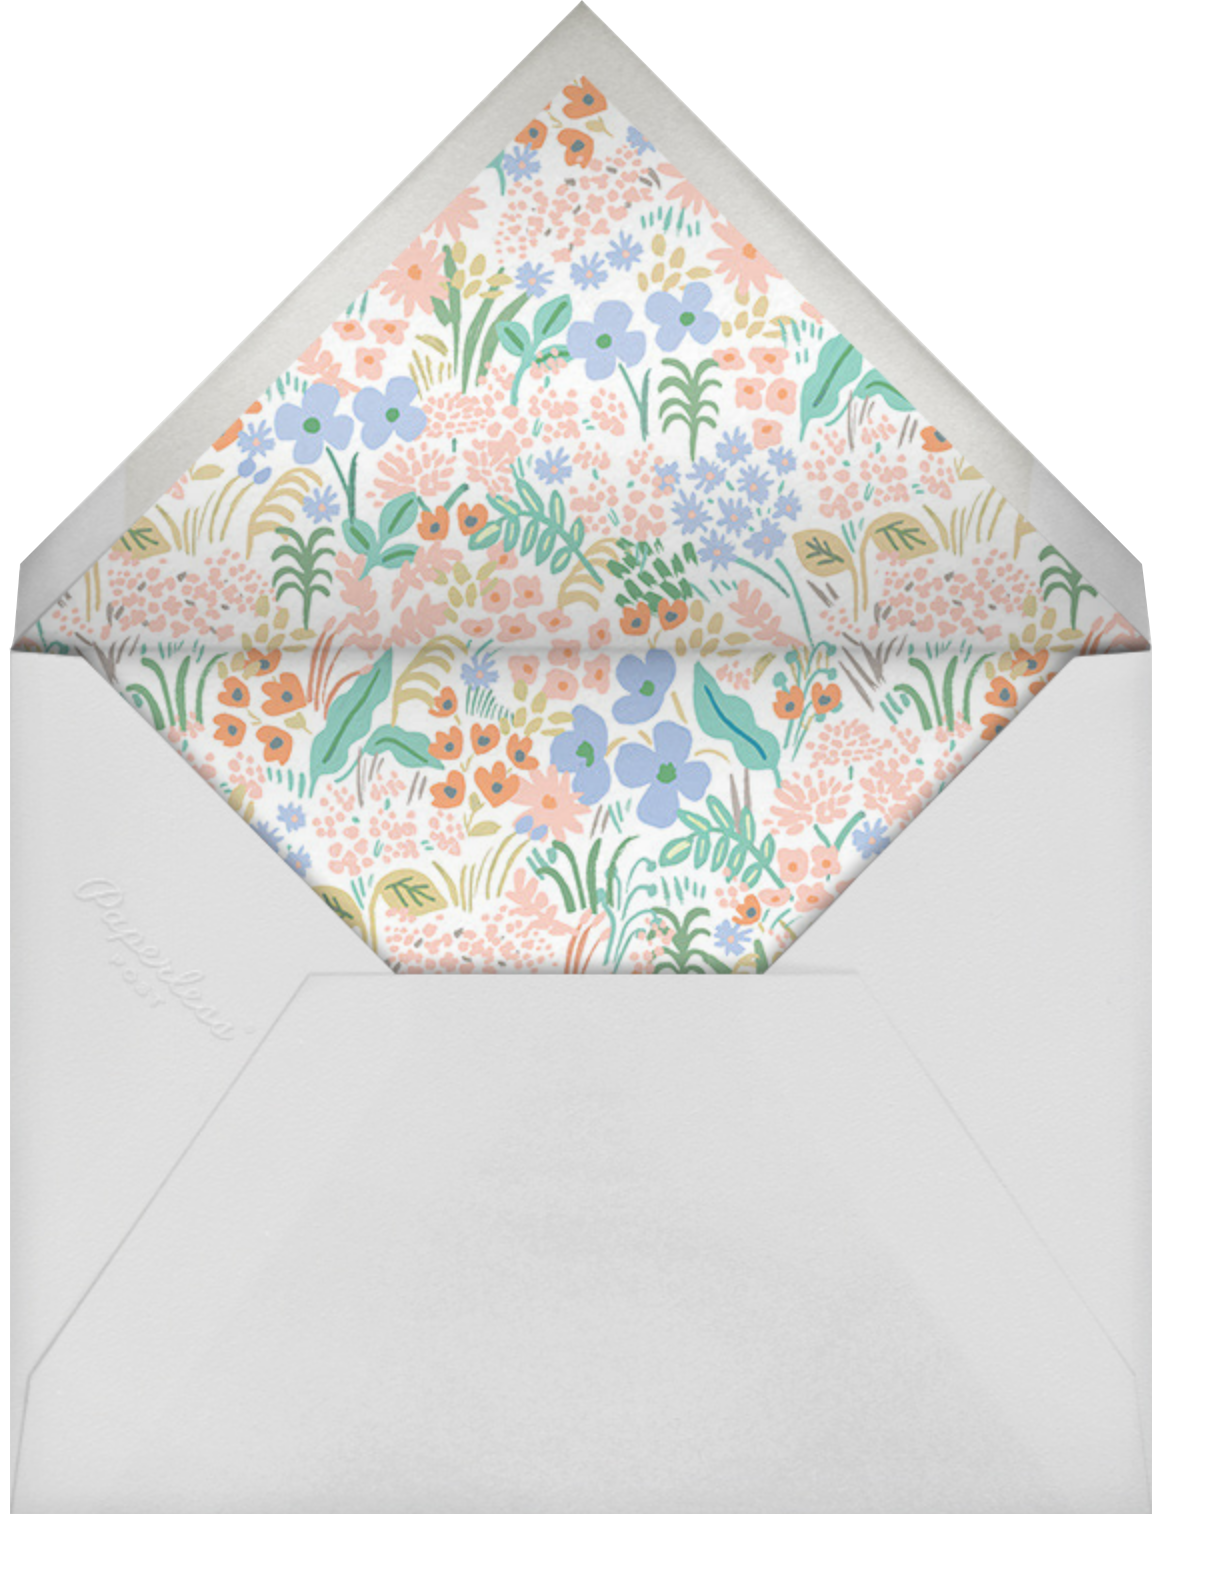 Meadow Welcome Little One - Rifle Paper Co. - Baby shower - envelope back